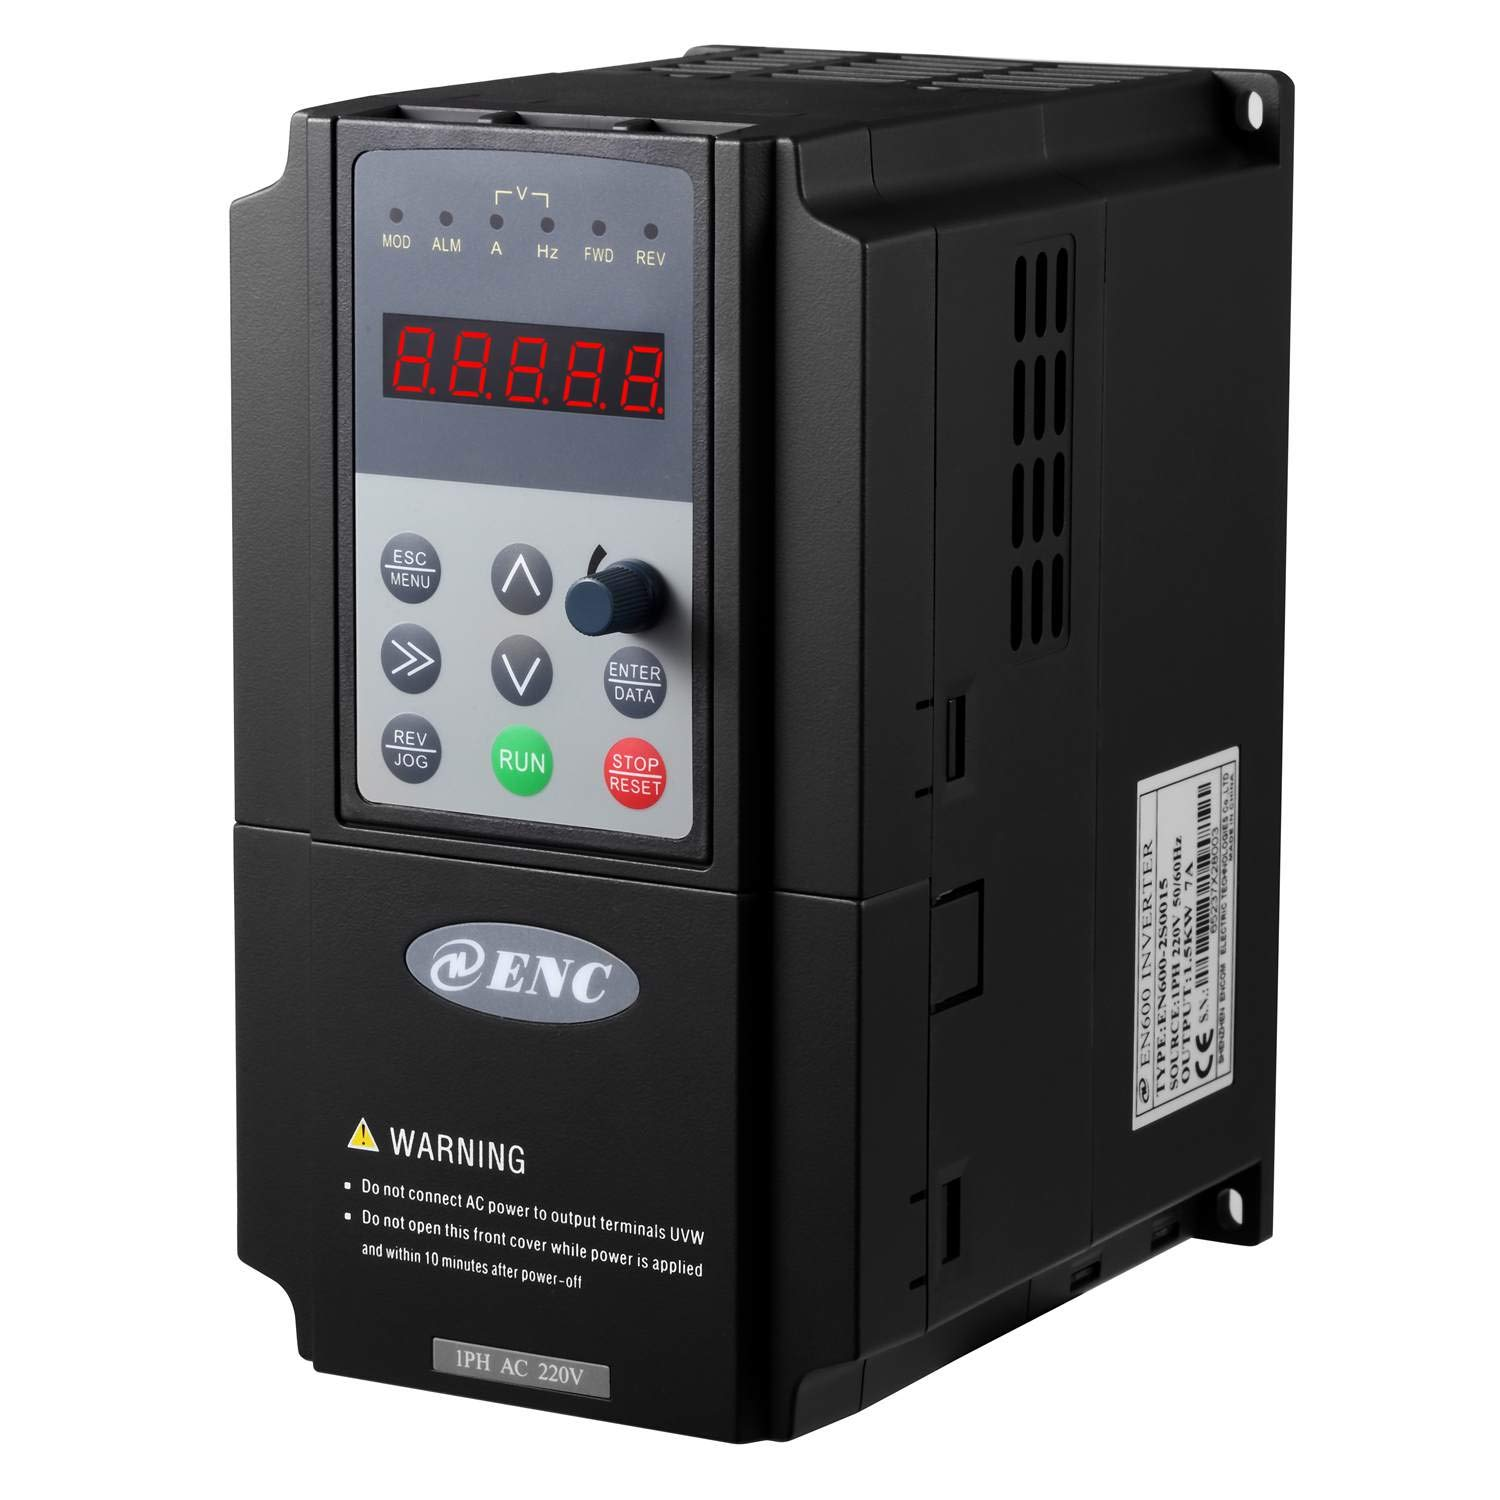 Litorange VF Control VFD 1 Single Phase 220V 1.5KW 2HP Variable Frequency Drive CNC VFD Motor Drive Inverter Converter for Spindle Motor Speed Control General Purpose.